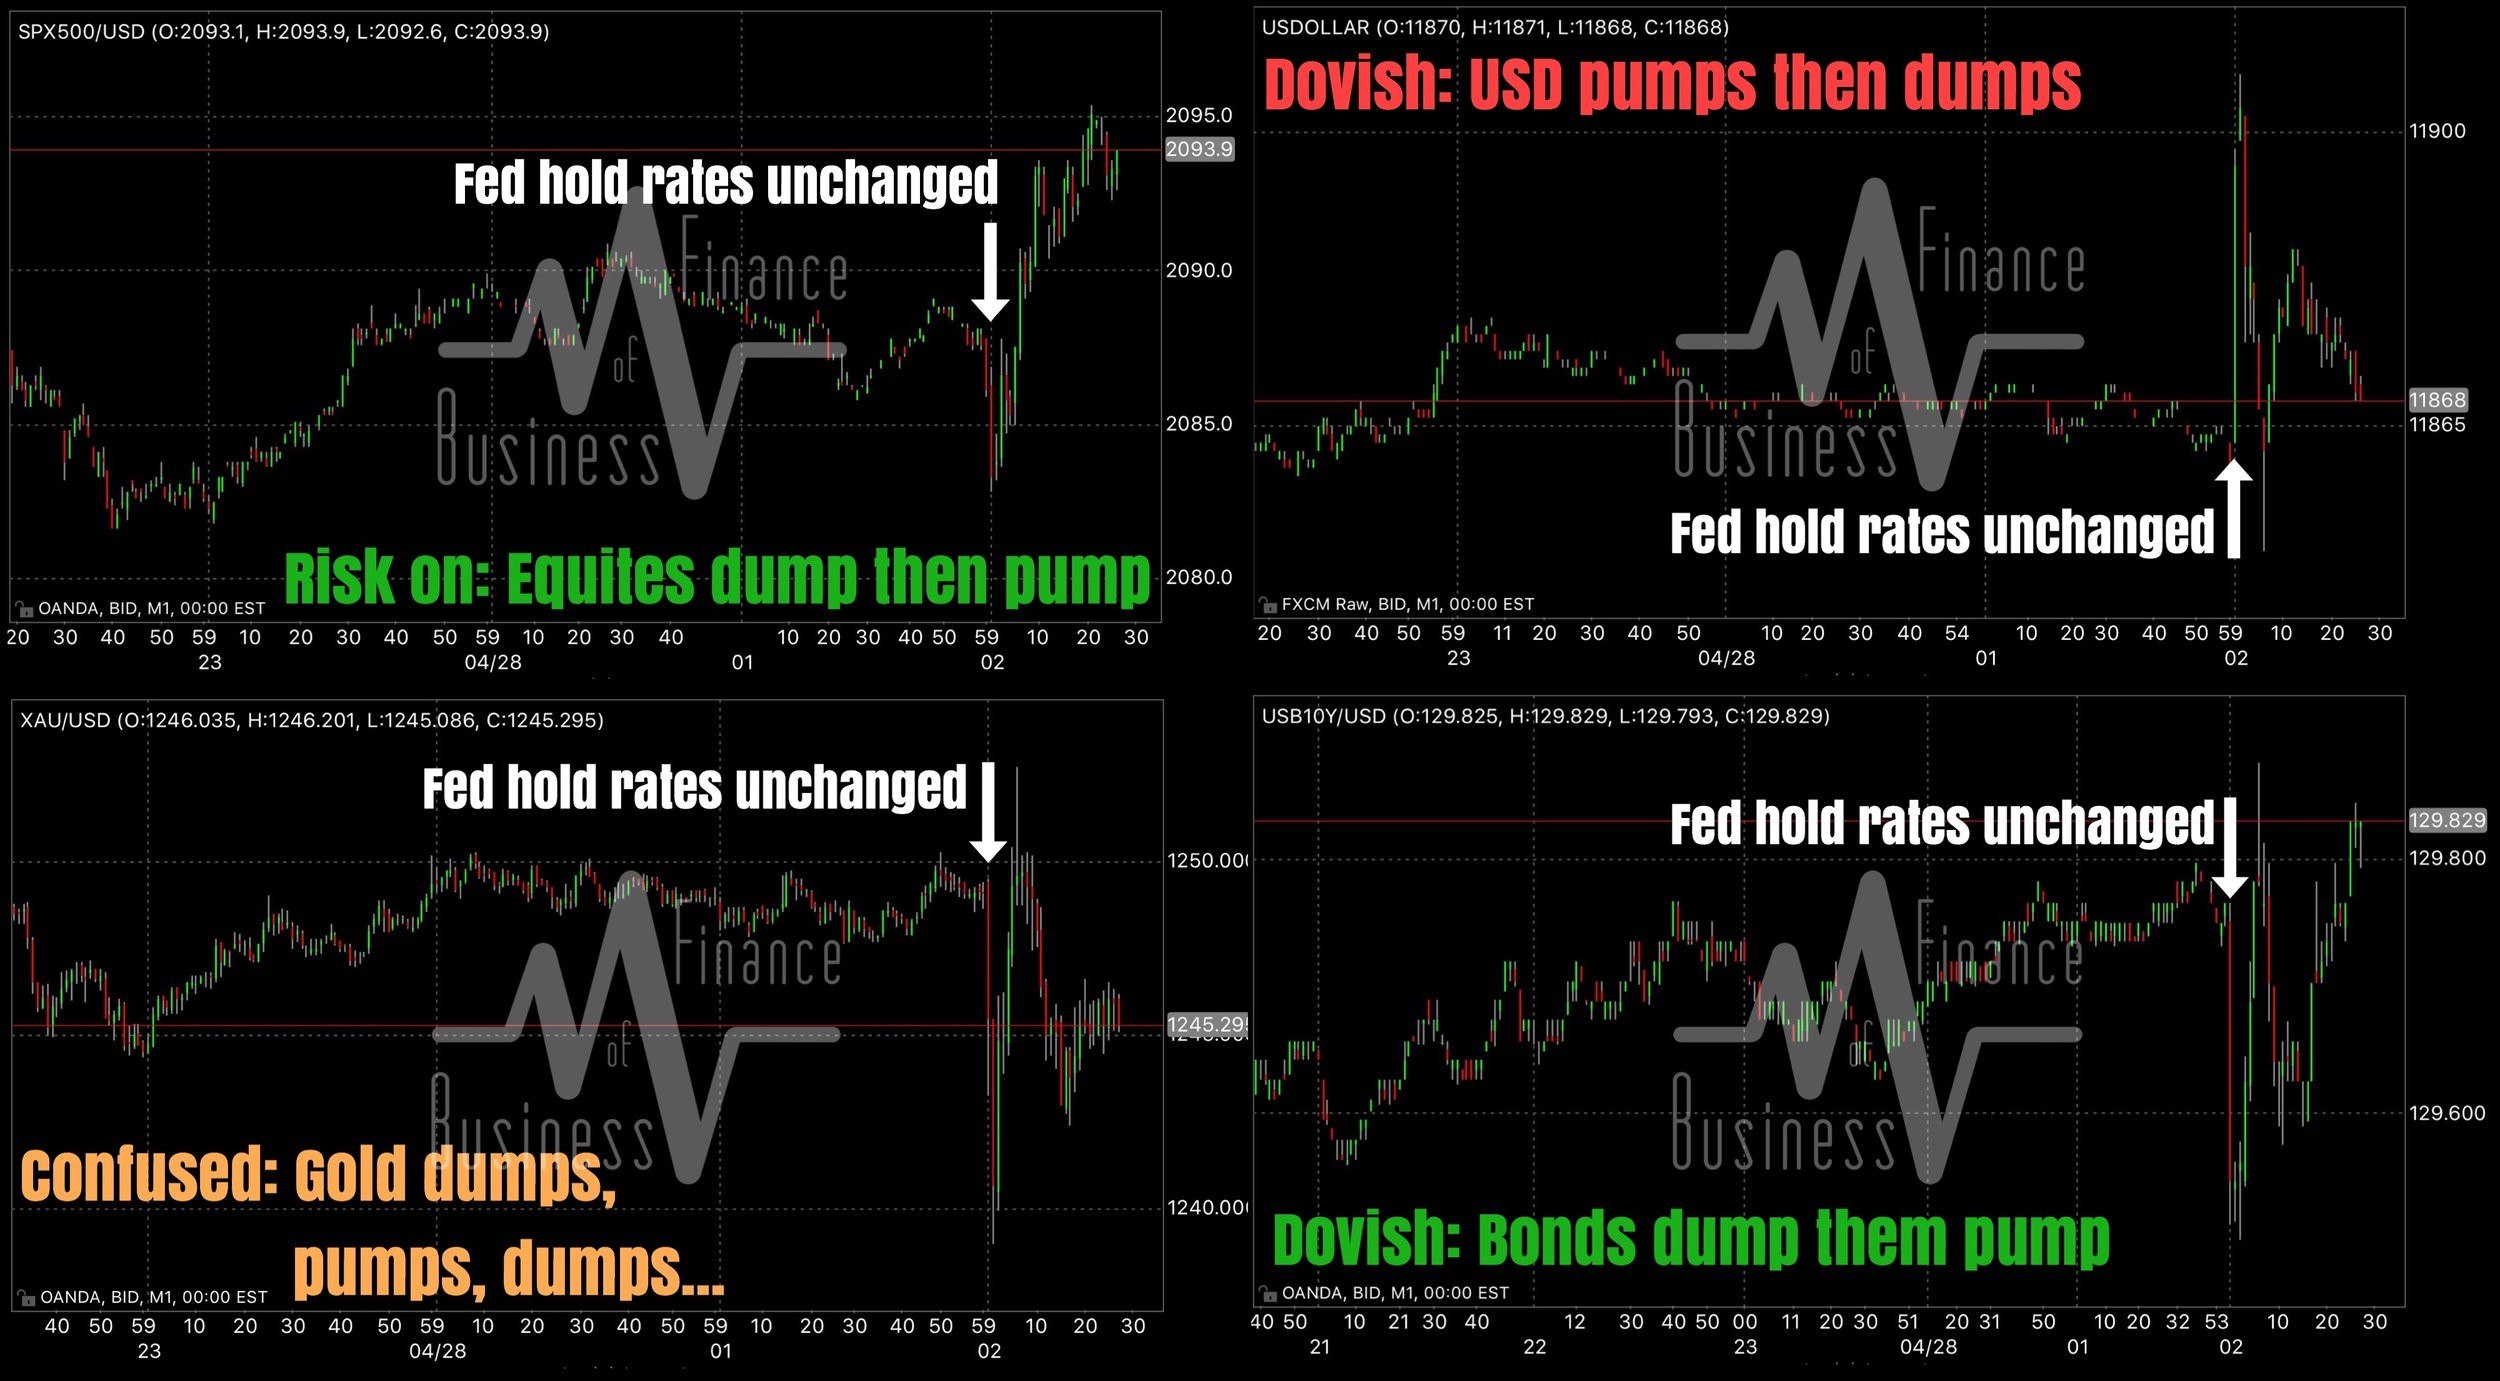 """""""The reaction across stocks, USD, gold, and U.S. treasuries post a quasi-dovish FOMC, or what we call a """"hawkishly-dovish"""" statement.    Equities are higher post event as risk flows turn positive after the initial knee jerk lower. SPX is attacking the week's highs as we go to print.    The U.S. dollar is weaker post event after initially ramping, again on a knee jerk. It seems market participants view the April statement as more bearish the dollar than bullish, despite FOMC having removed the emphasis on negative global risks, and reasserting that the labor market is on track to reaching full employment.    Bonds are higher (yields lower) post event, and are perhaps the single most directional asset class here other than equities. Markets clearly view the statement as dovish — Bullish for equites and bonds, bearish for dollar.    And lastly, Gold remains confused after dumping on a knee jerk, then rallying to unchanged, then dumping again before somewhat stabilizing slightly lower pre-FOMC. We note that silver is trading much stronger than gold is.""""    Business Of Finance on Facebook, 28 April 2016"""